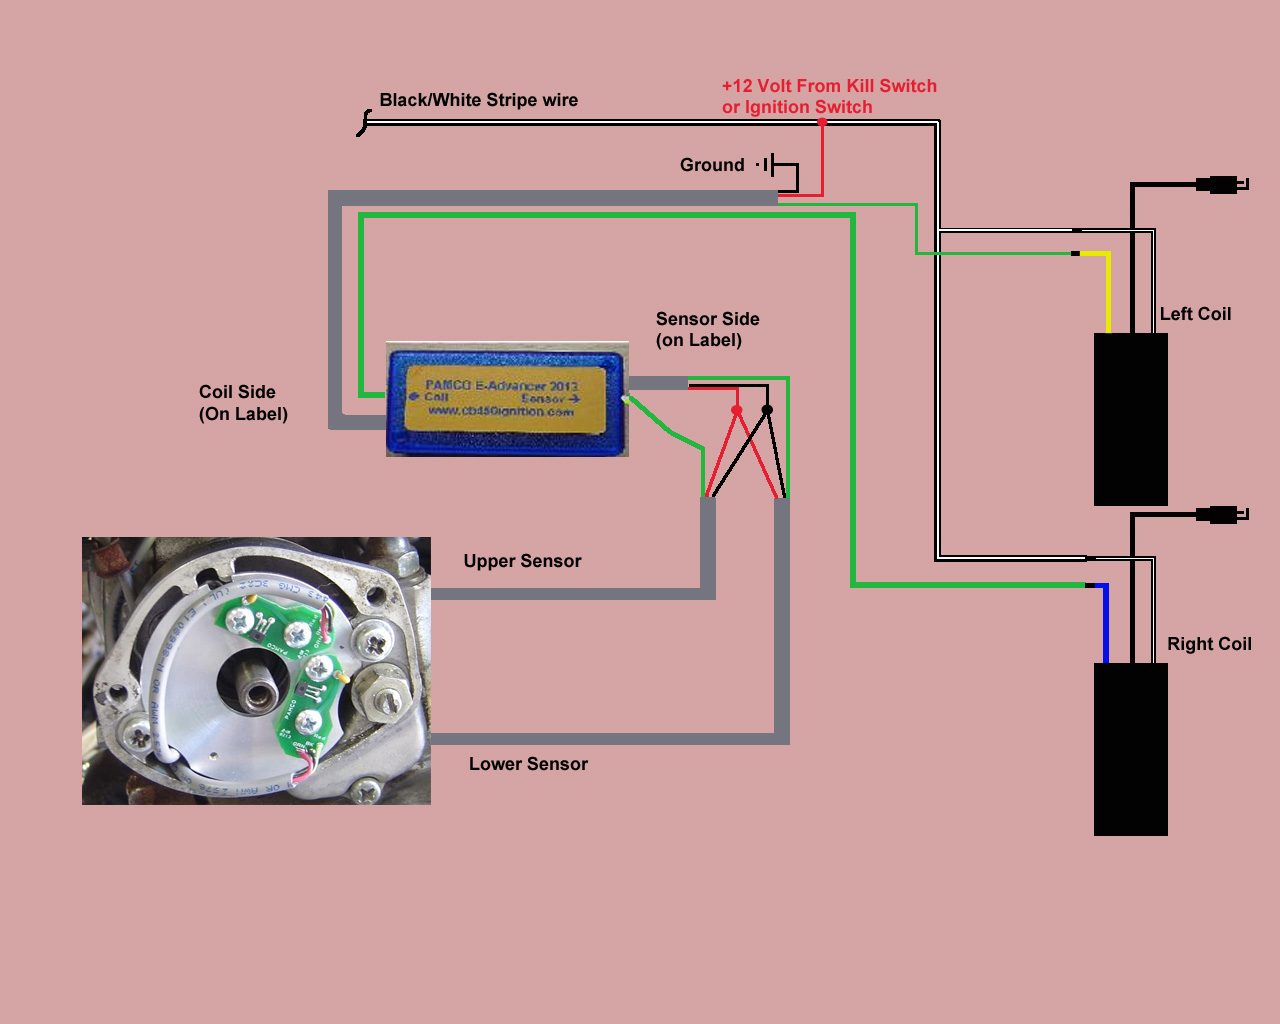 d help pamco universal coils pamco cb electronic advancer wiring diagram jpg help pamco and universal coils help pamco and universal coils pamco cb450 electronic advancer wiring